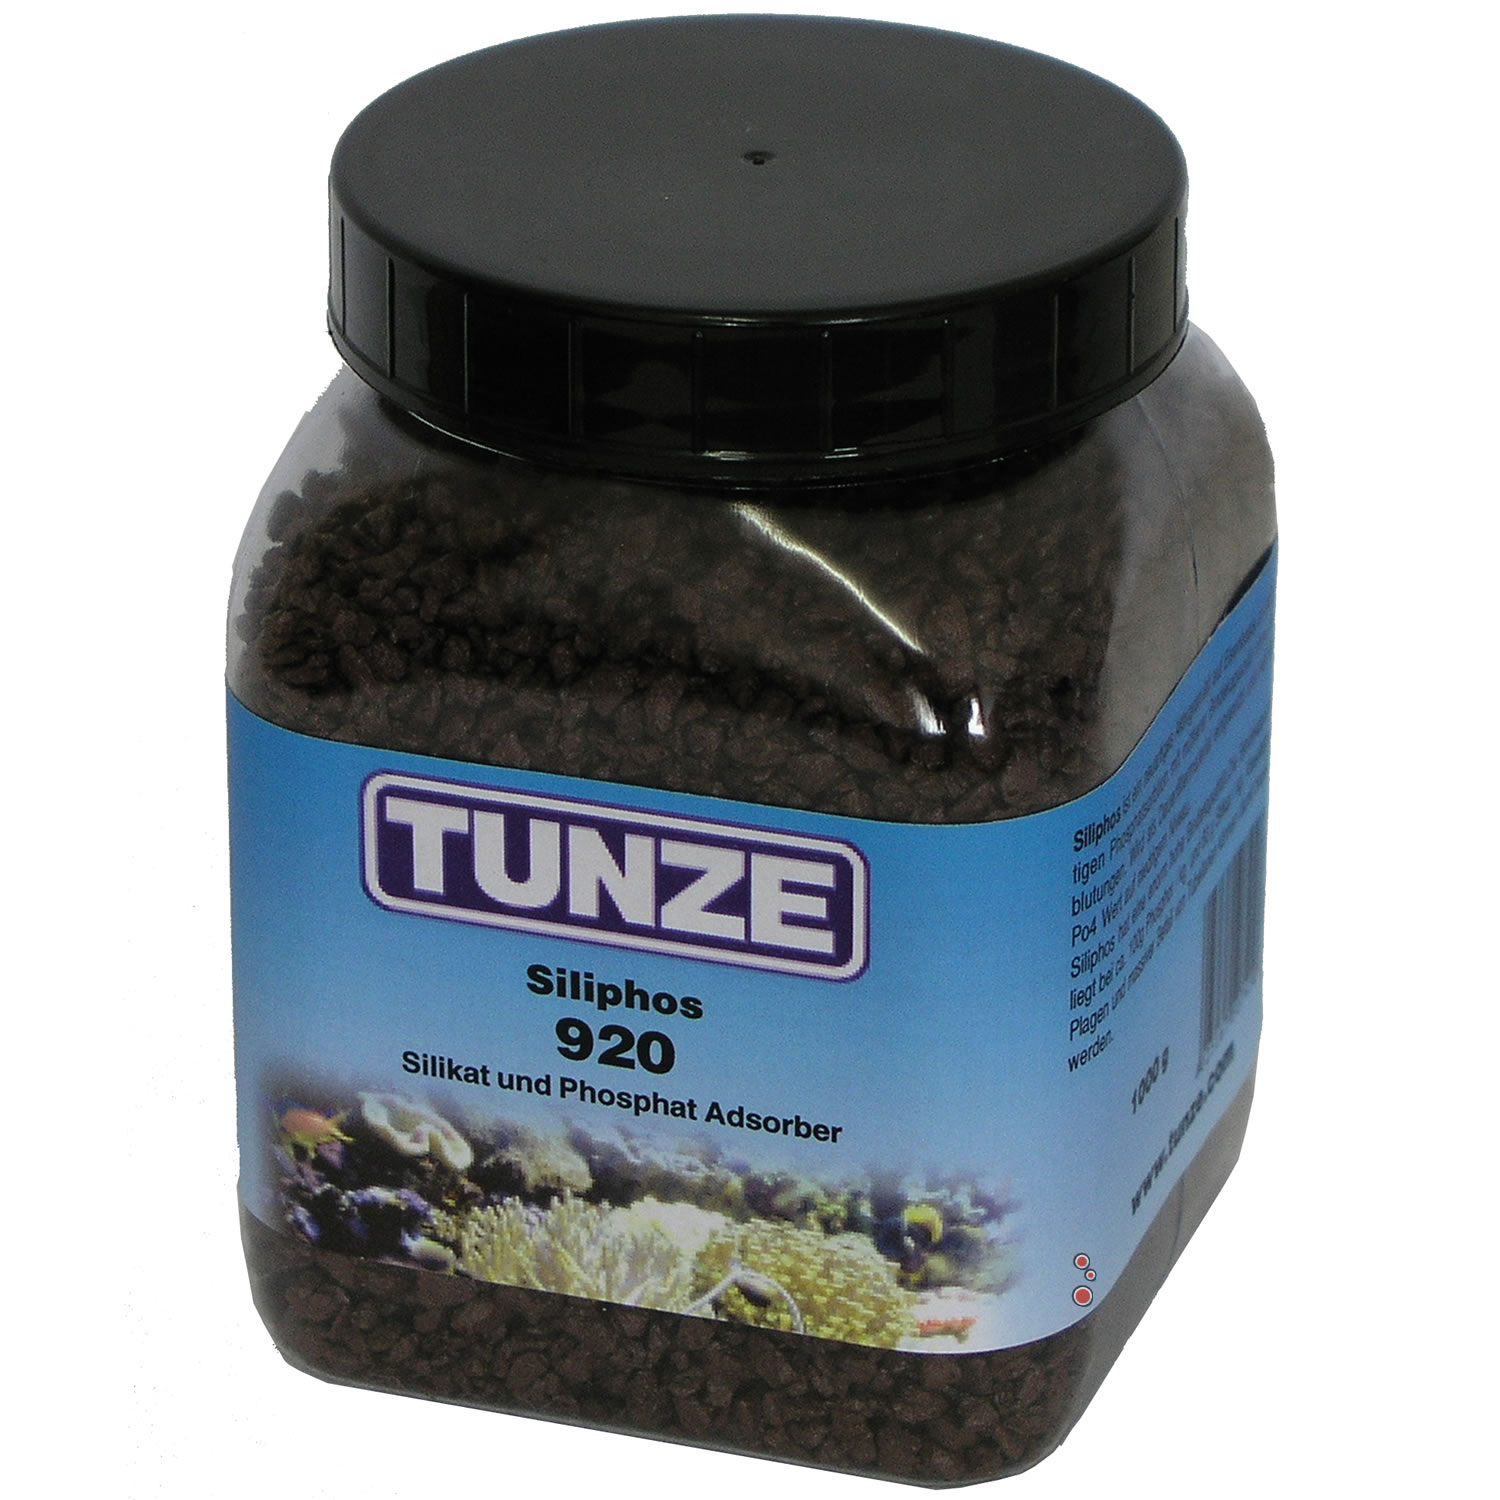 TUNZE Silphos 750ml [0920.000]